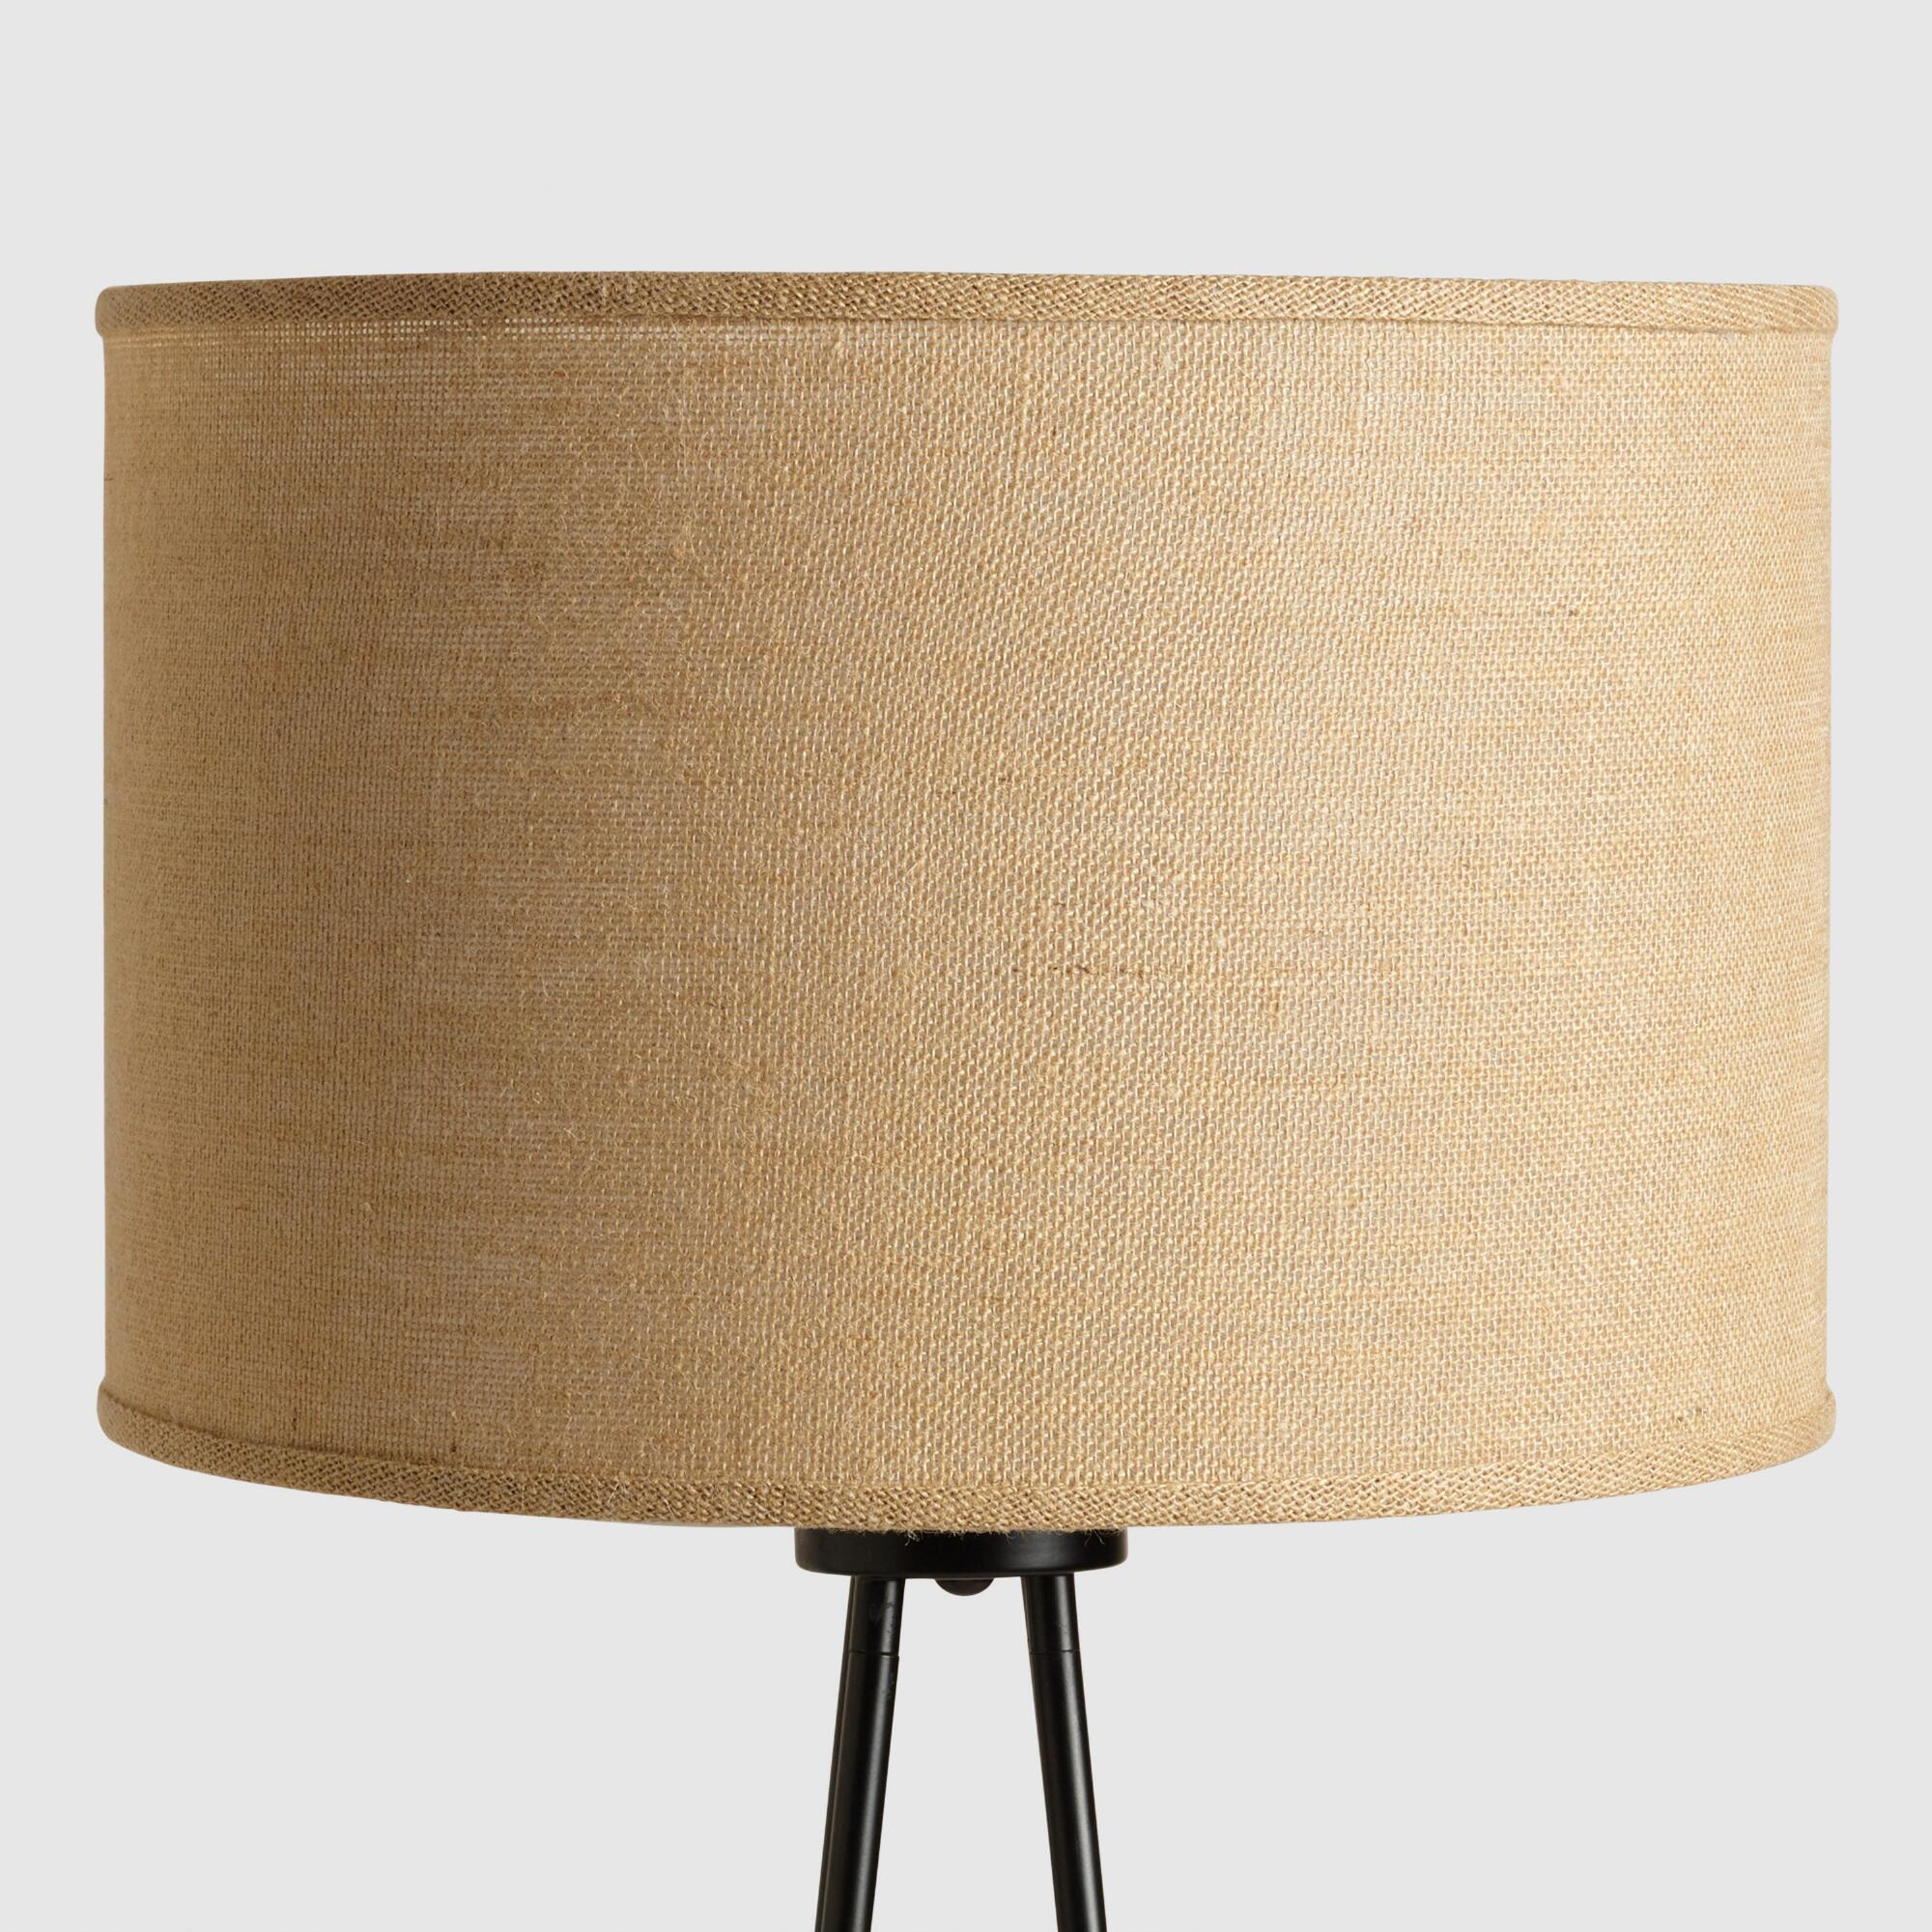 Natural Burlap Drum Floor Lamp Shade World Market